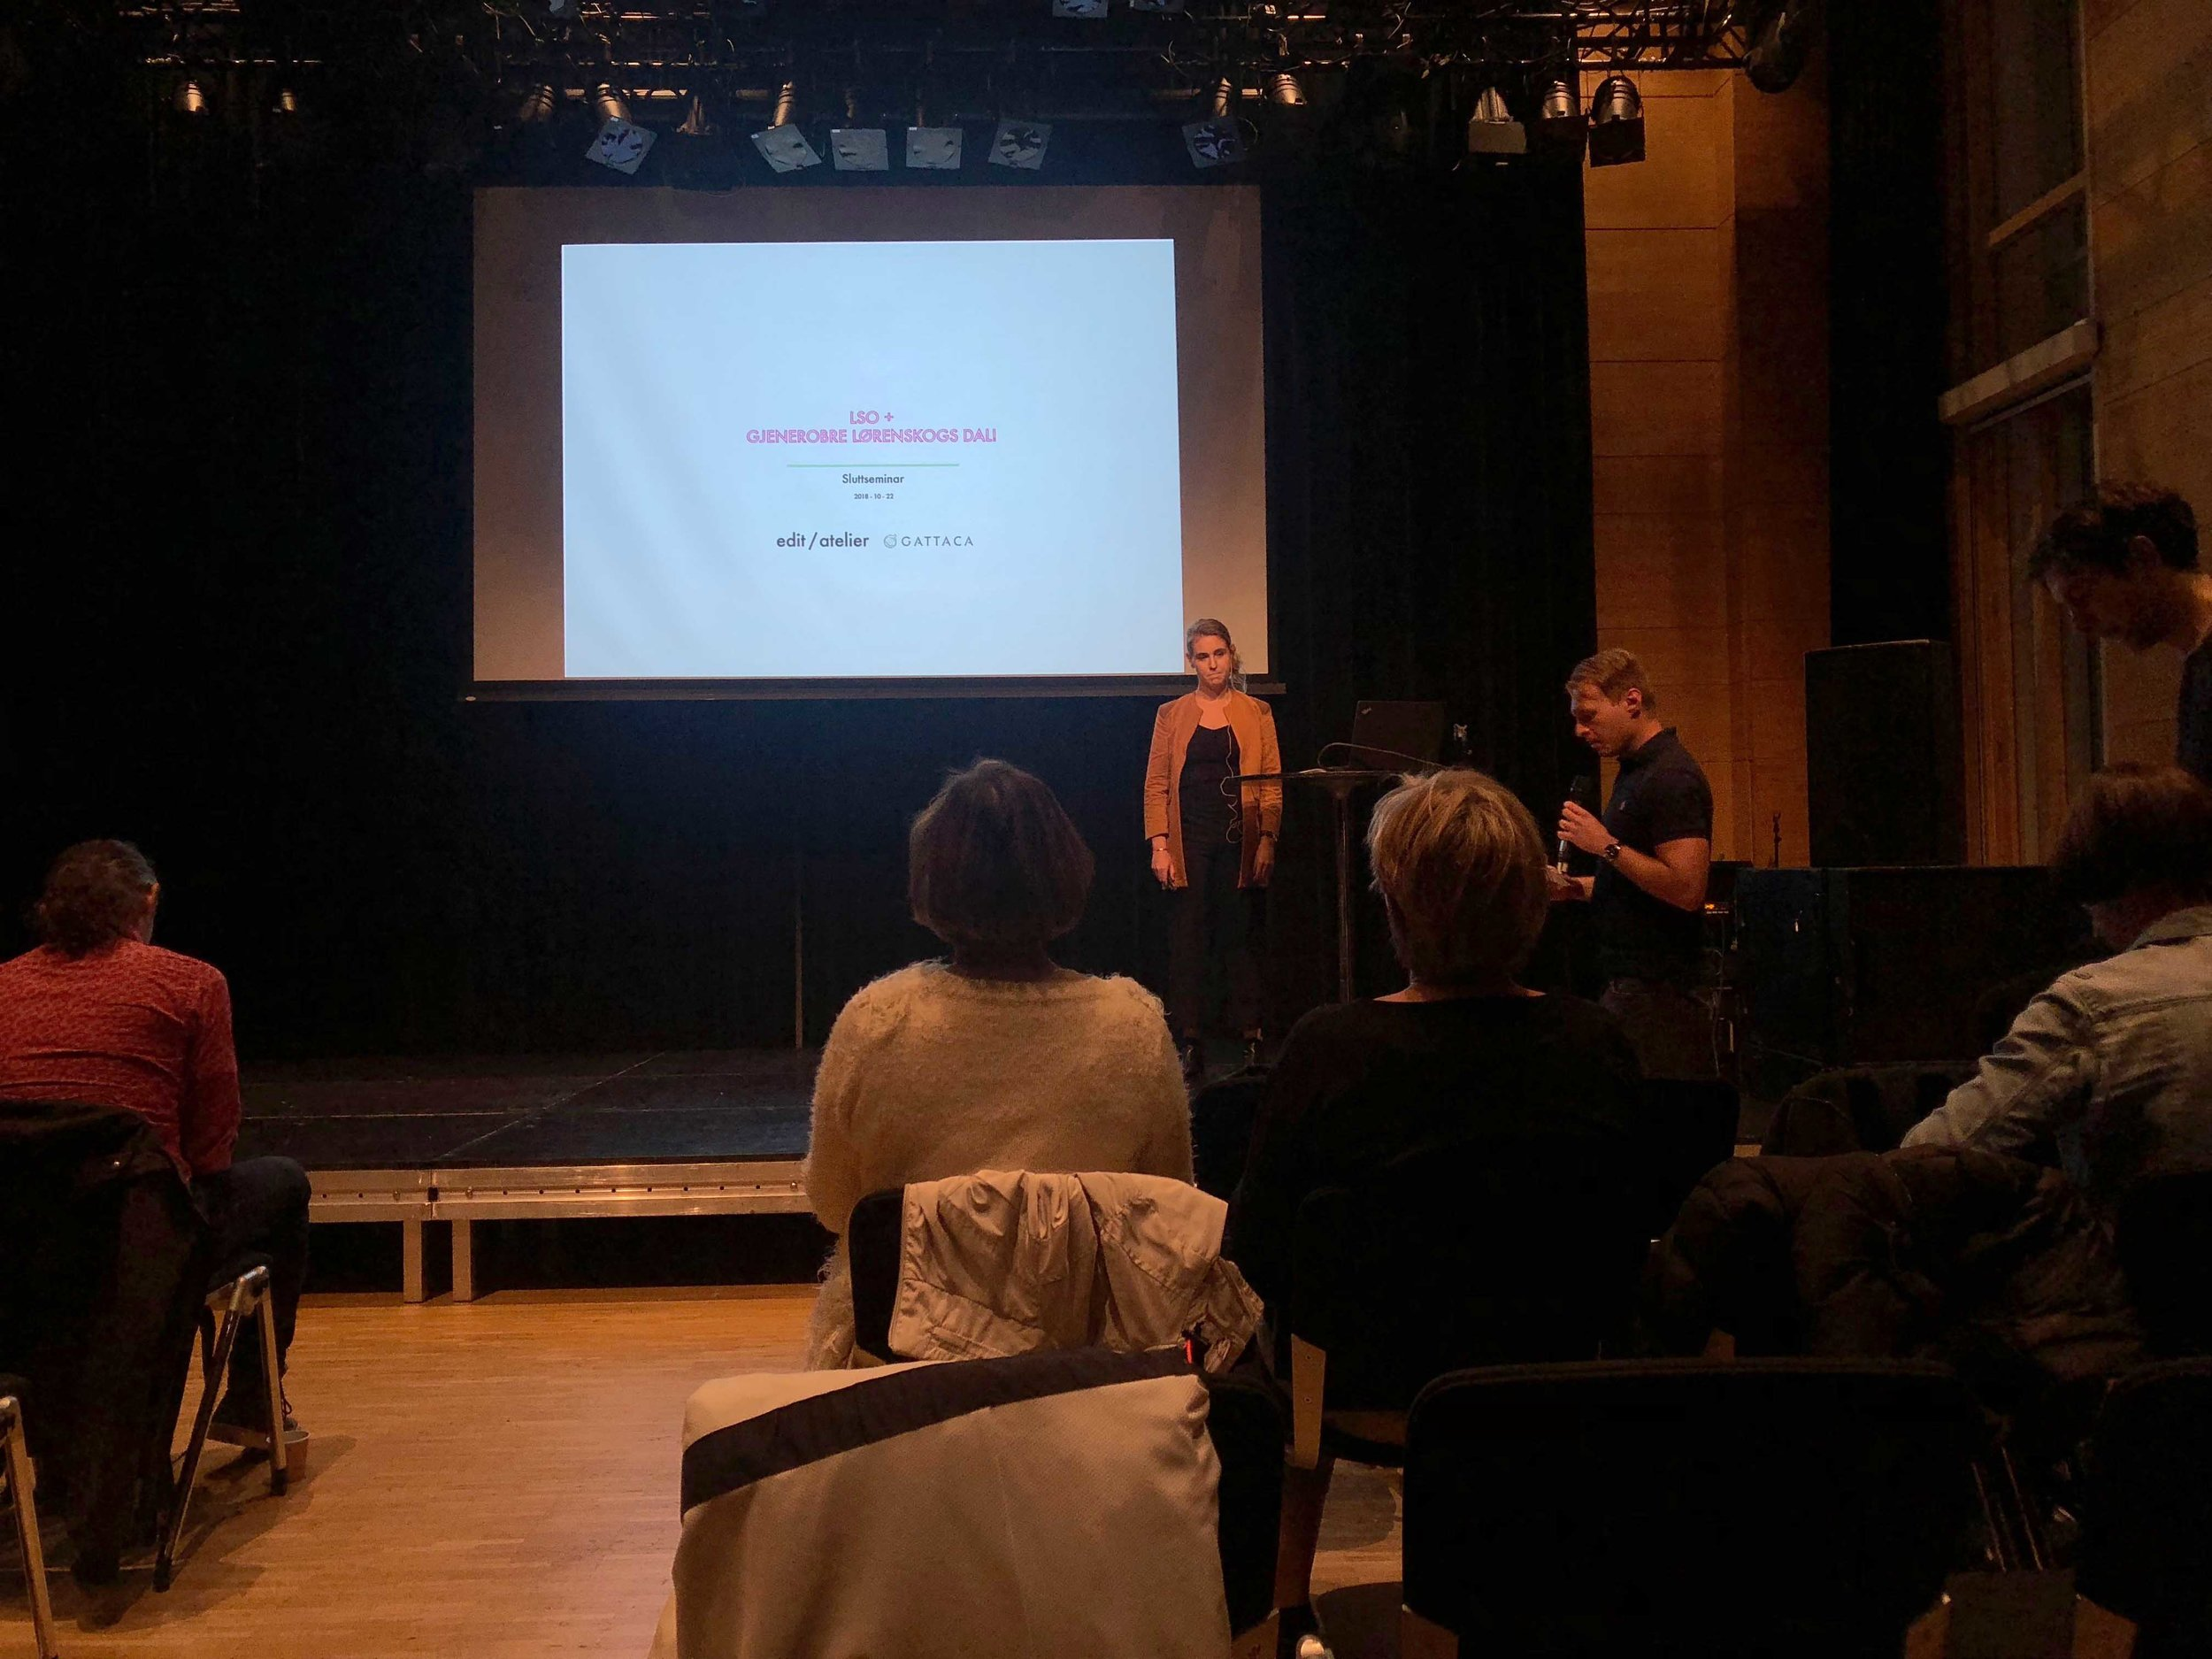 The Conclusion of Lørenskog Station Area - 22.10.2018 - Lørenskog Hus, Lørenskog - Linn Runesson presented on behalf of the Edit/atelier & Tin, as the parallel commission for Lørenskog Station Area reaches its final conclusion..